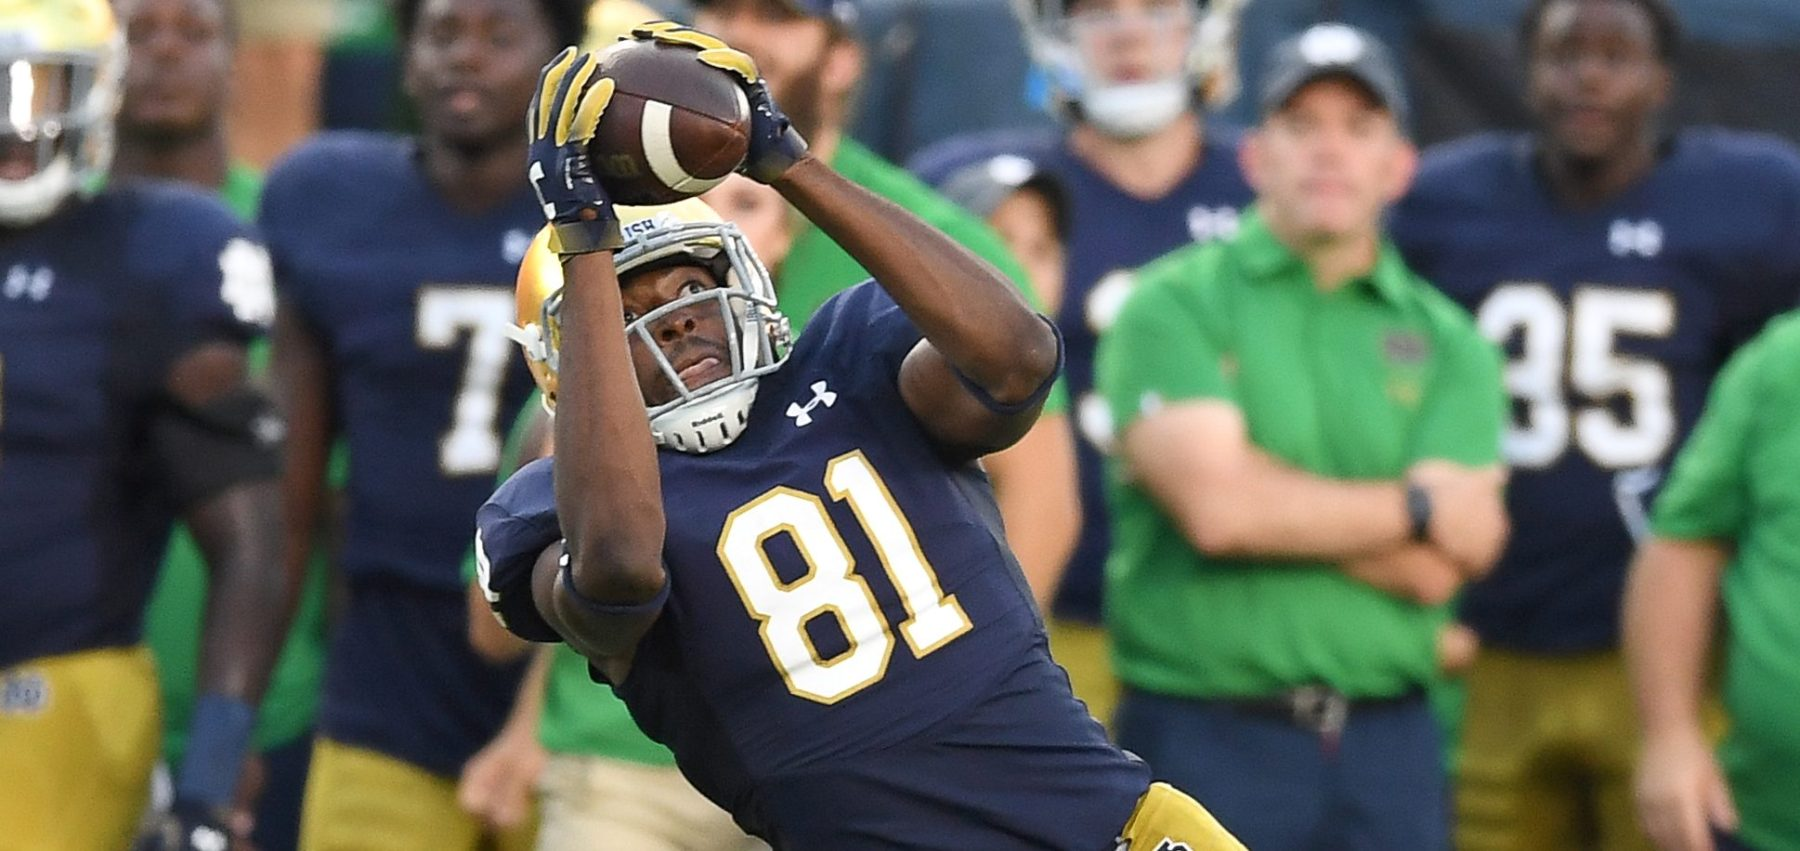 Notre Dame Fighting Irish wide receiver Miles Boykin (81) beats Michigan Wolverines defensive back Lavert Hill (24) to catch the football on September 1, 2018 at Notre Dame Stadium, in South Bend, Indiana. (Photo by Robin Alam/Icon Sportswire via Getty Images)